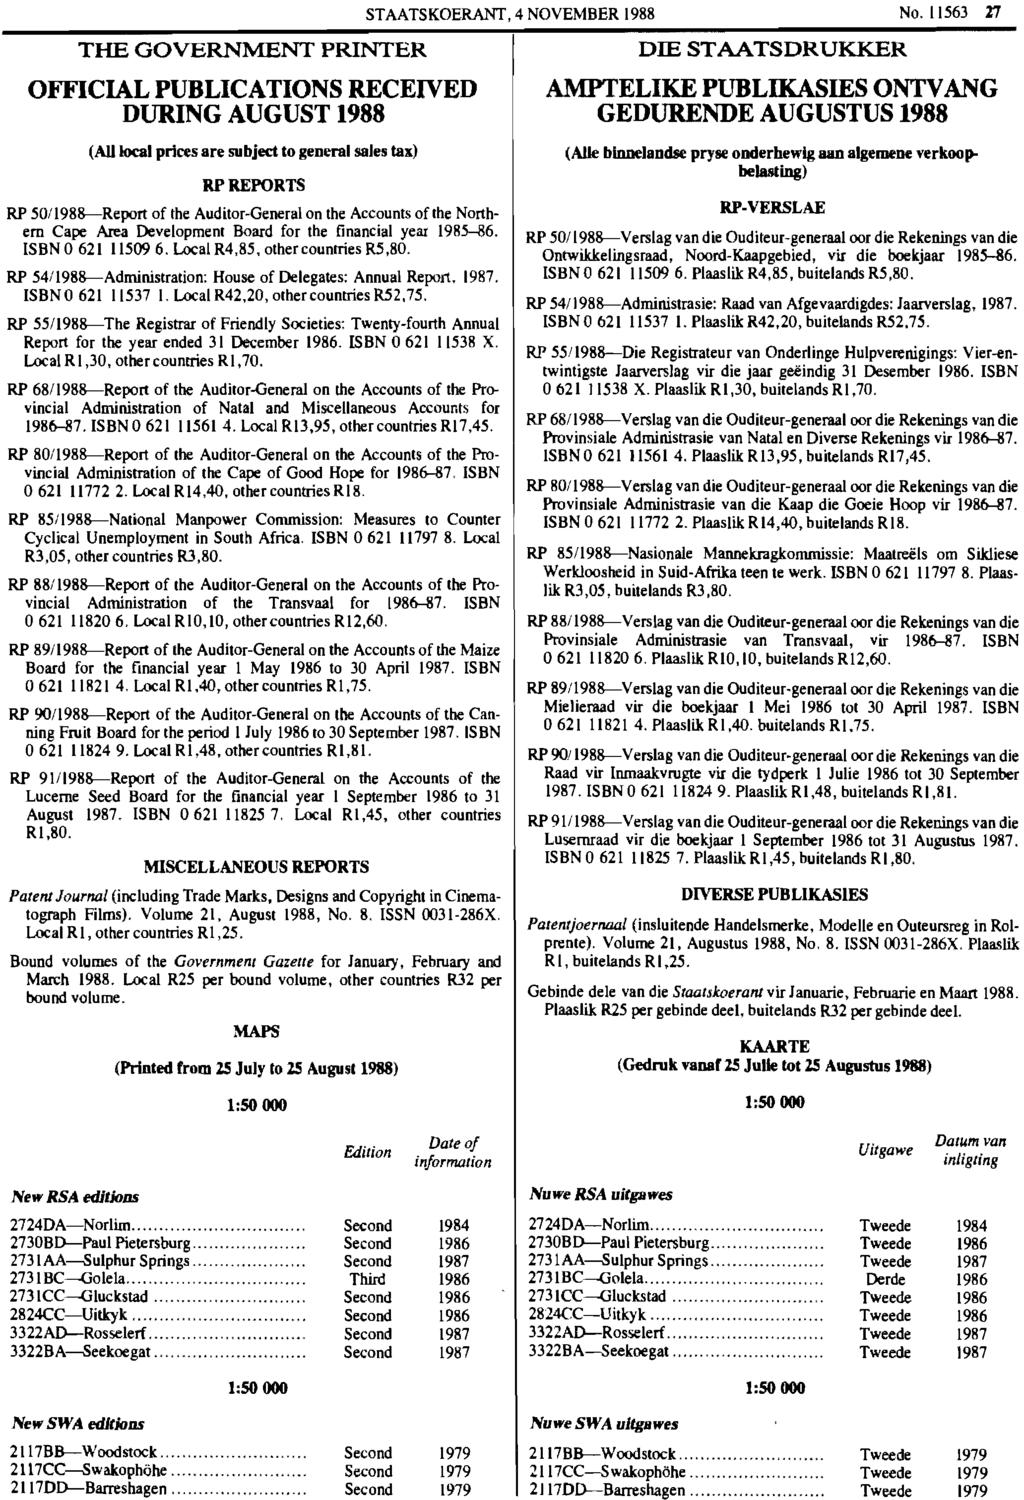 THE GOVERNMENT PRINTER OFFICIAL PUBLICATIONS RECEIVED DURING AUGUST 1988 (AUIoc:aI prices are subject to general sales tax) RPREPORTS RP 50/1988-Report of the Auditor-General on the Accounts of the